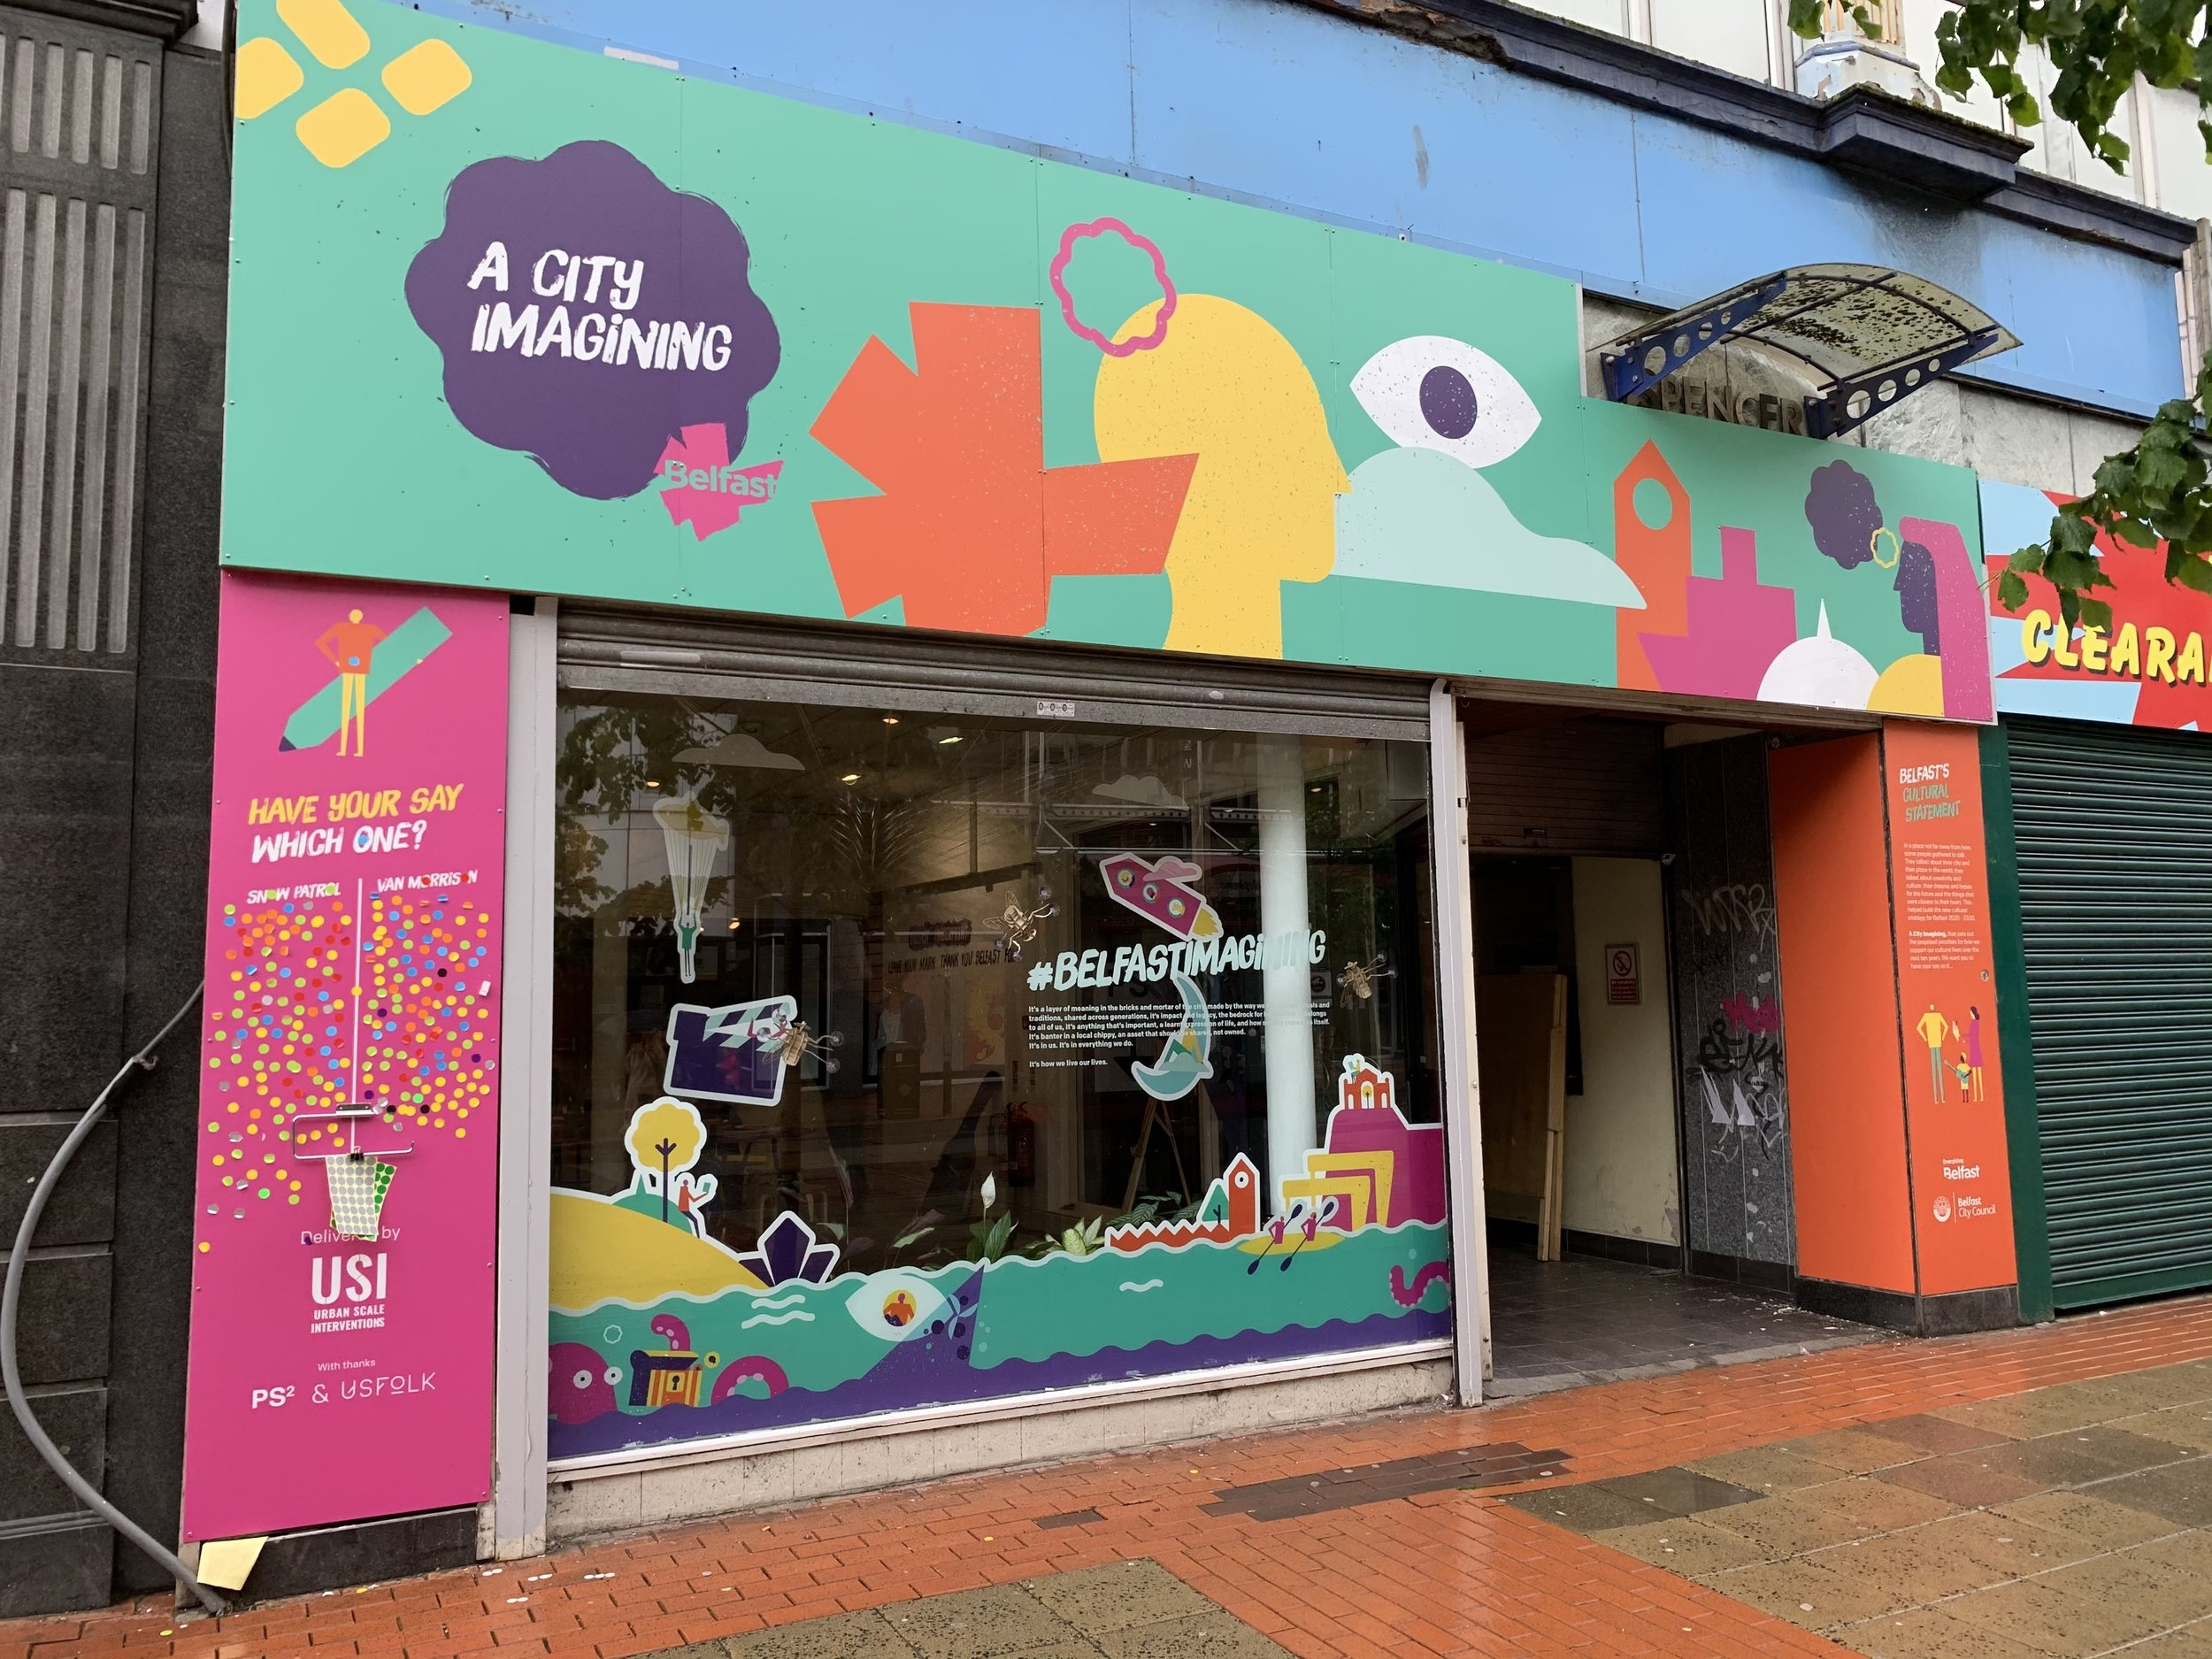 The City Imagining Shop on Royal Avenue in Belfast